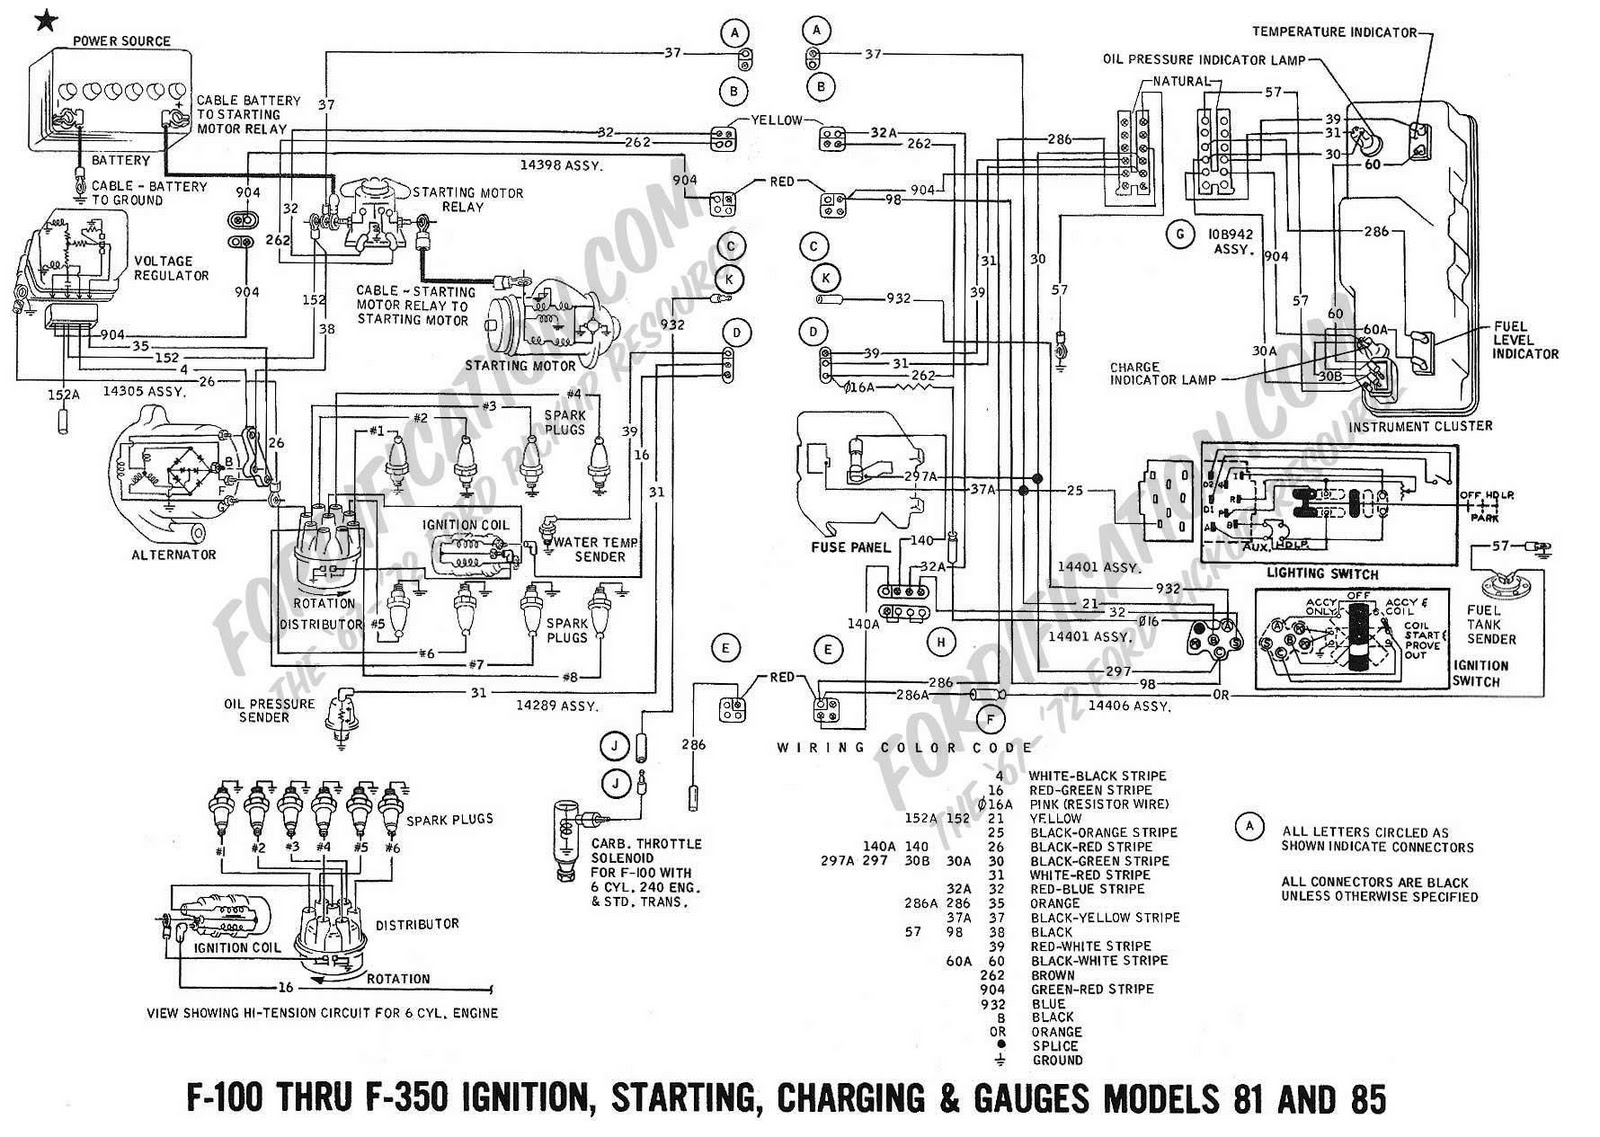 1968 ford f100 wiring diagram color wiring diagrams box 65 ford wiring diagram 1966 f100 wiring [ 1600 x 1137 Pixel ]